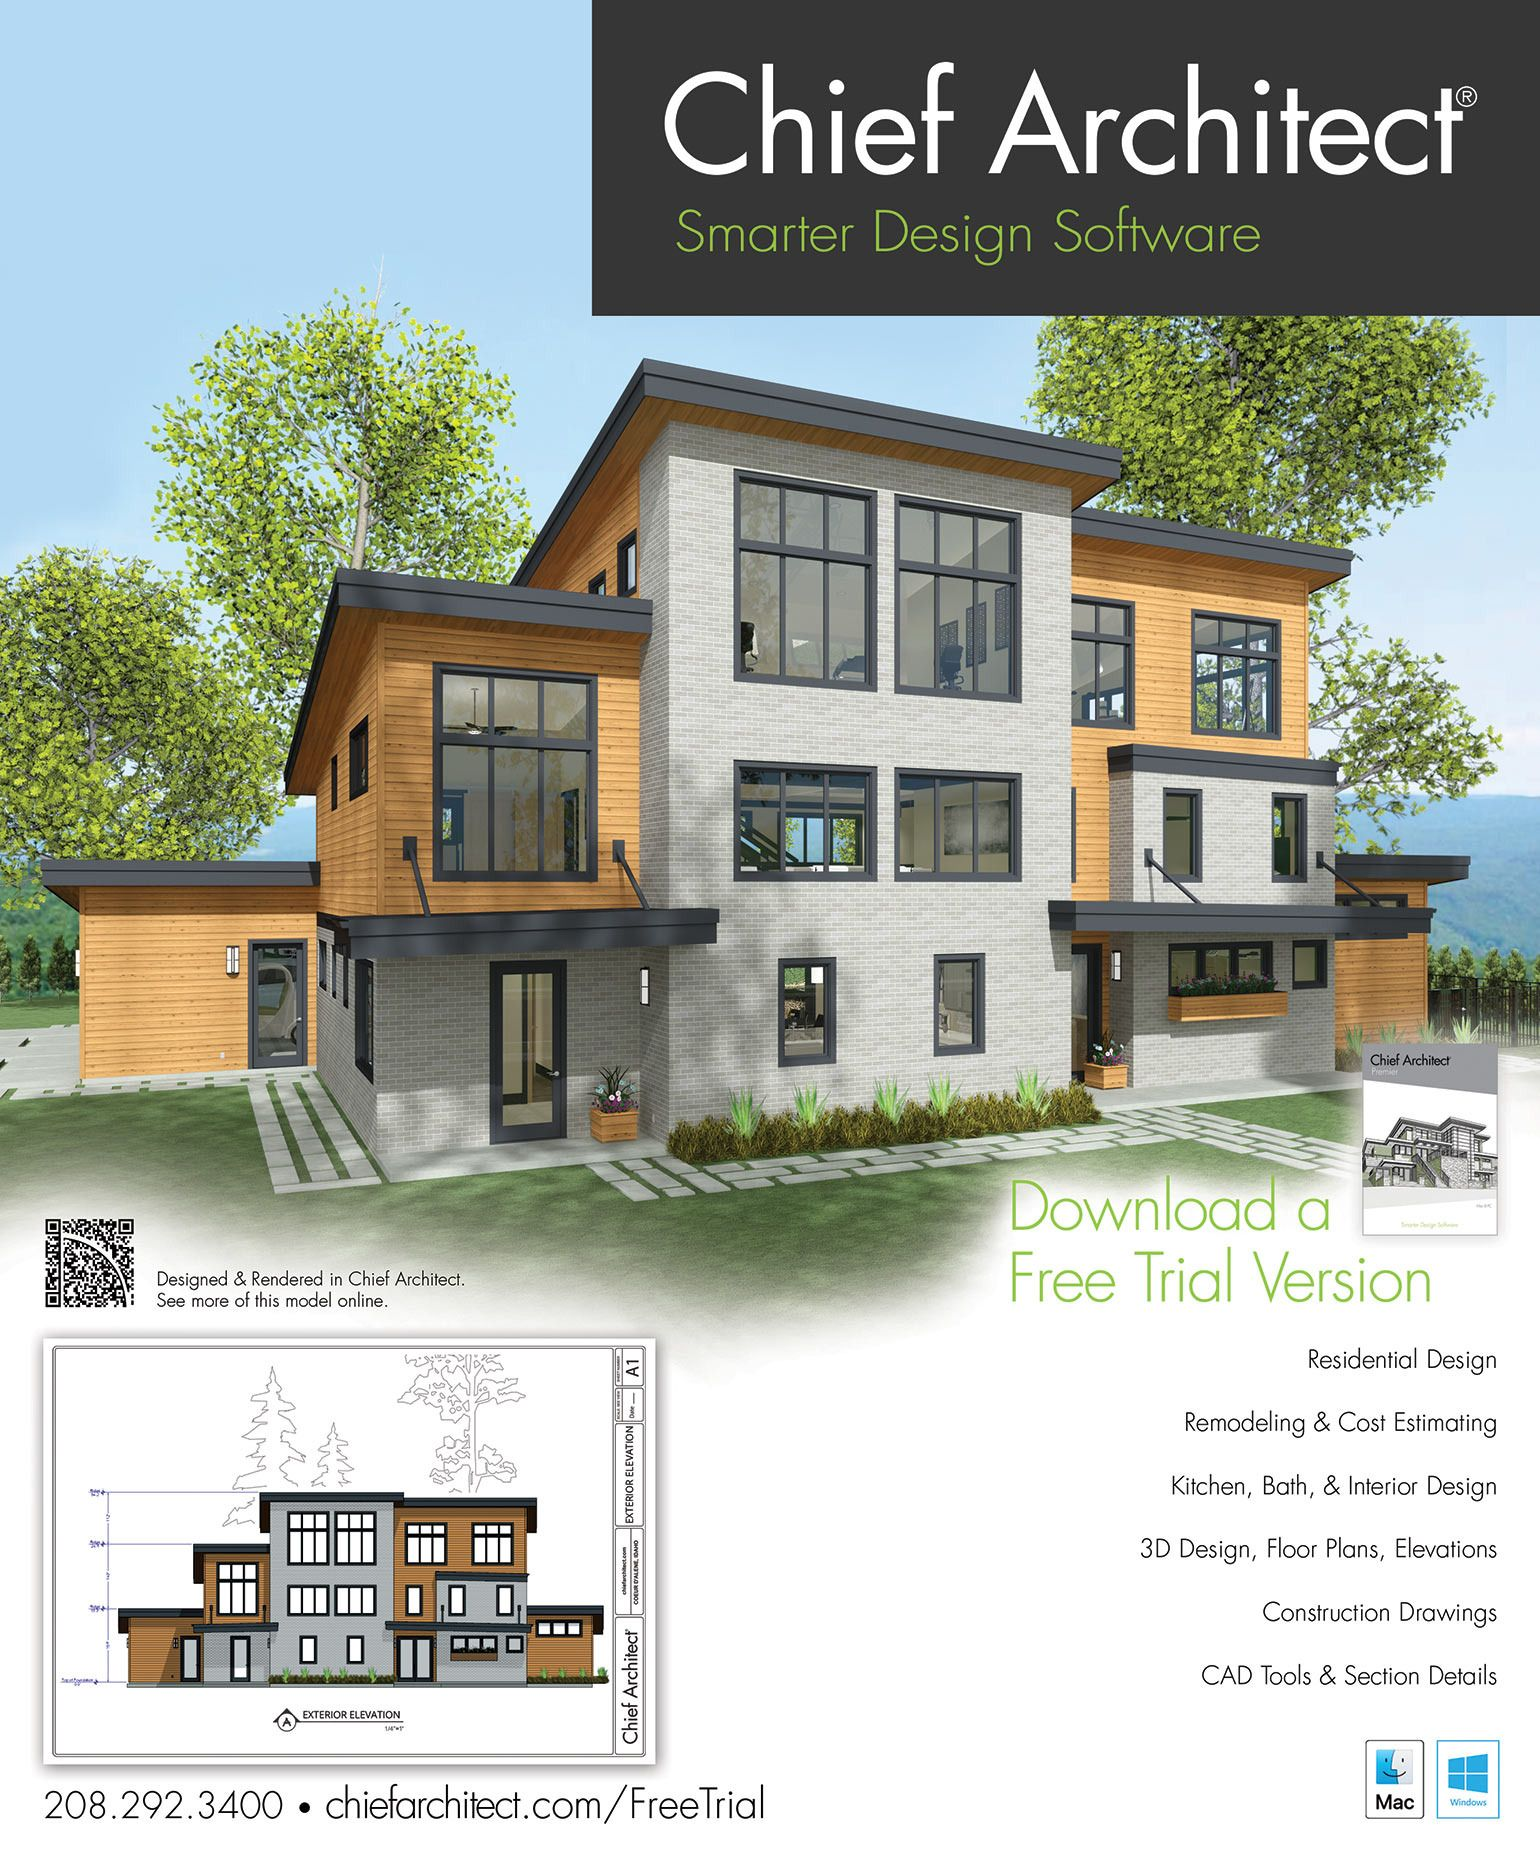 Architectural House Plans Software Free Download 2021 3d Home Design Software Architectural House Plans Chief Architect